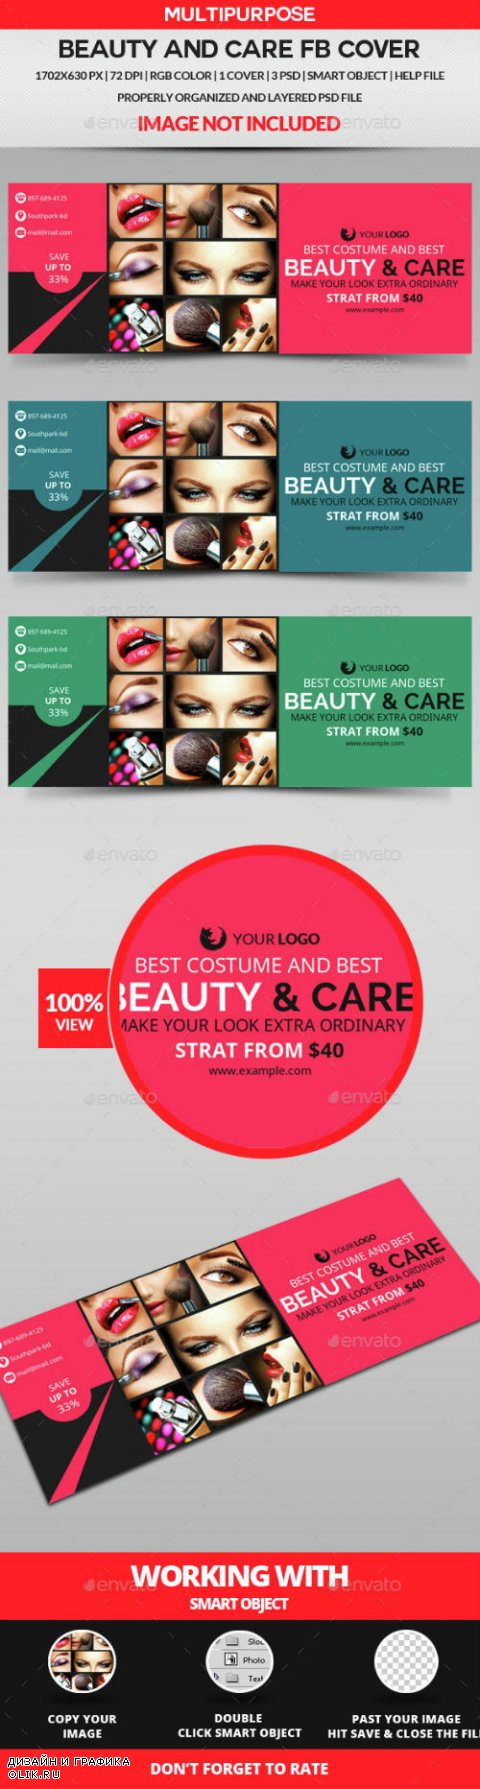 Beauty & Care Facebook Cover 14952279